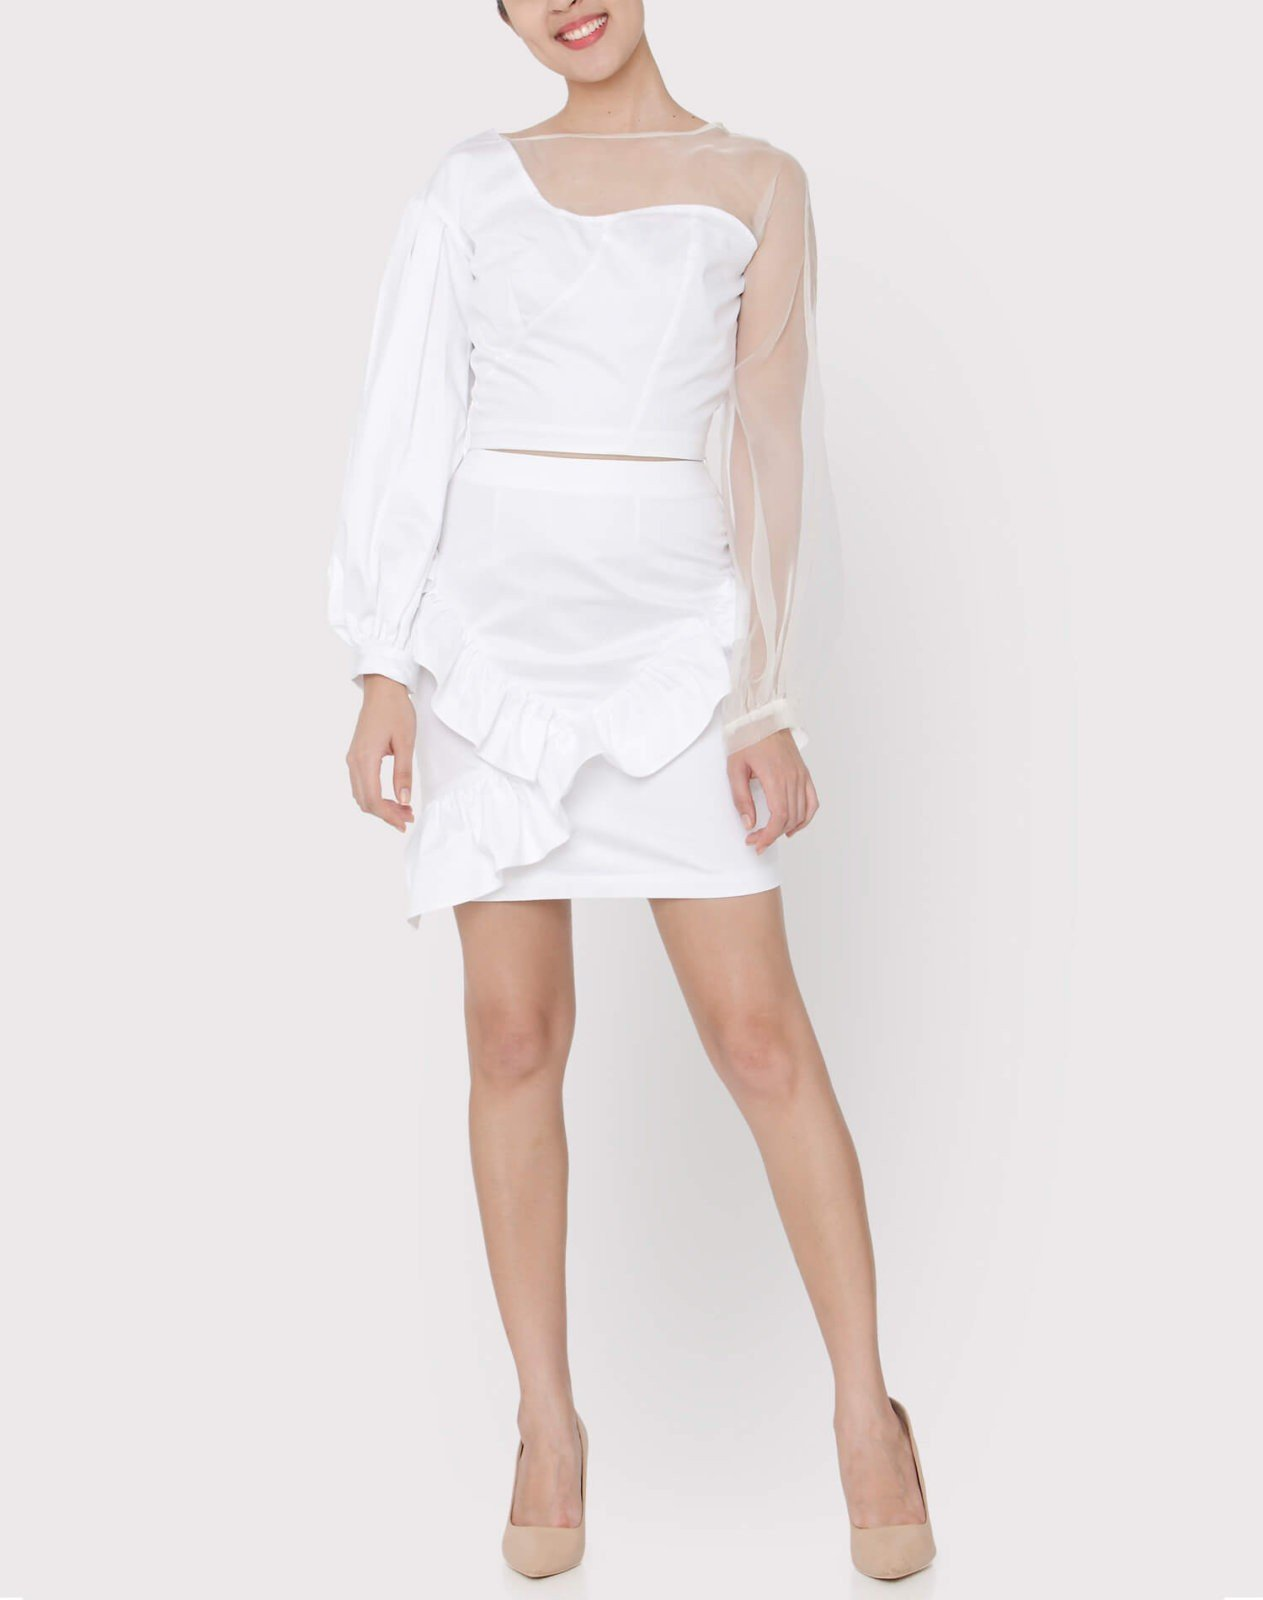 White silk organza panel top styled with white cotton satin ruffle skit